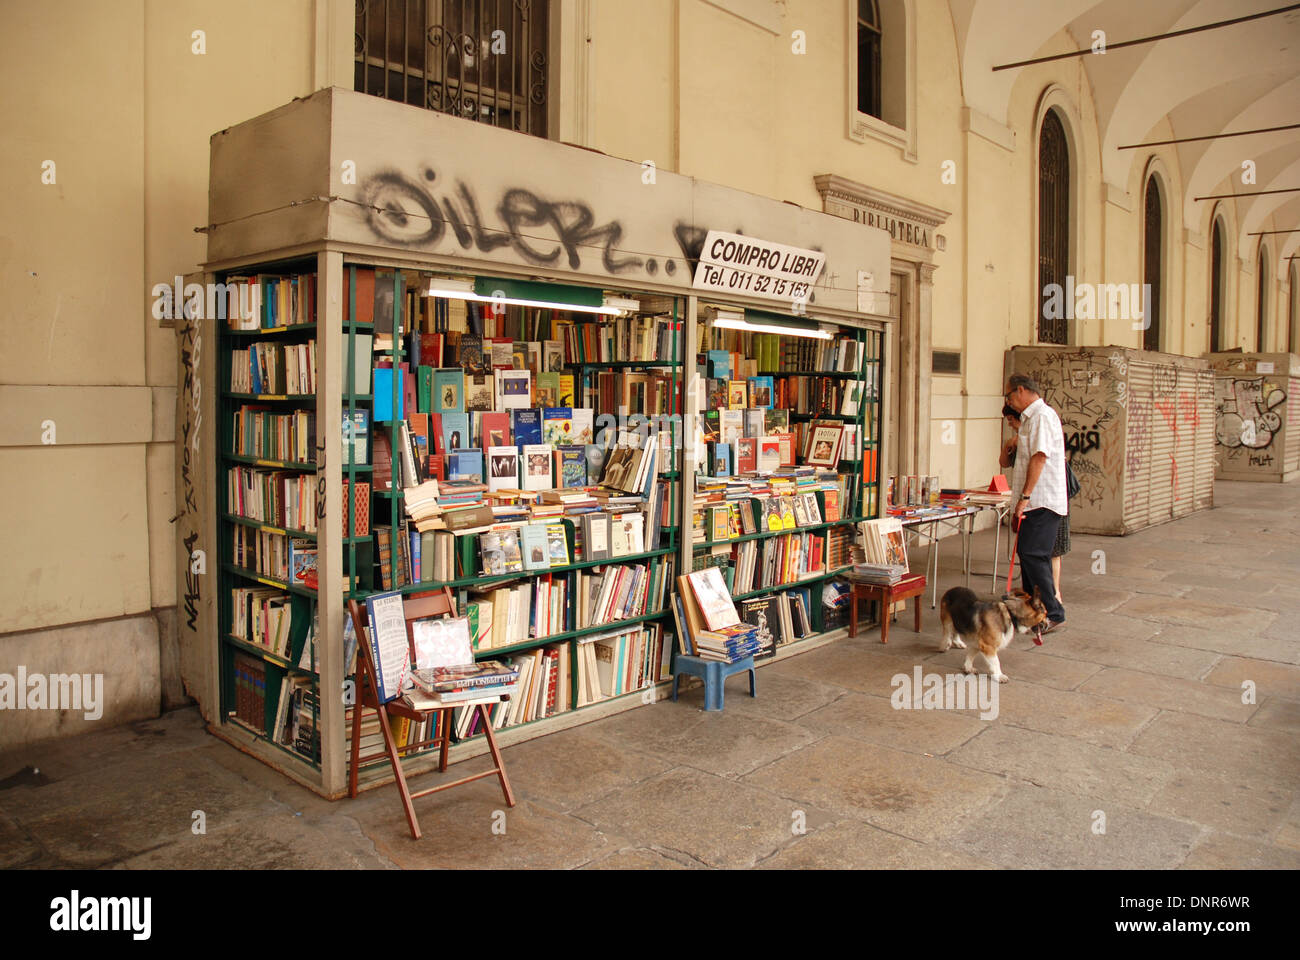 street bookshop, Torino, Turin, Italy Stock Photo